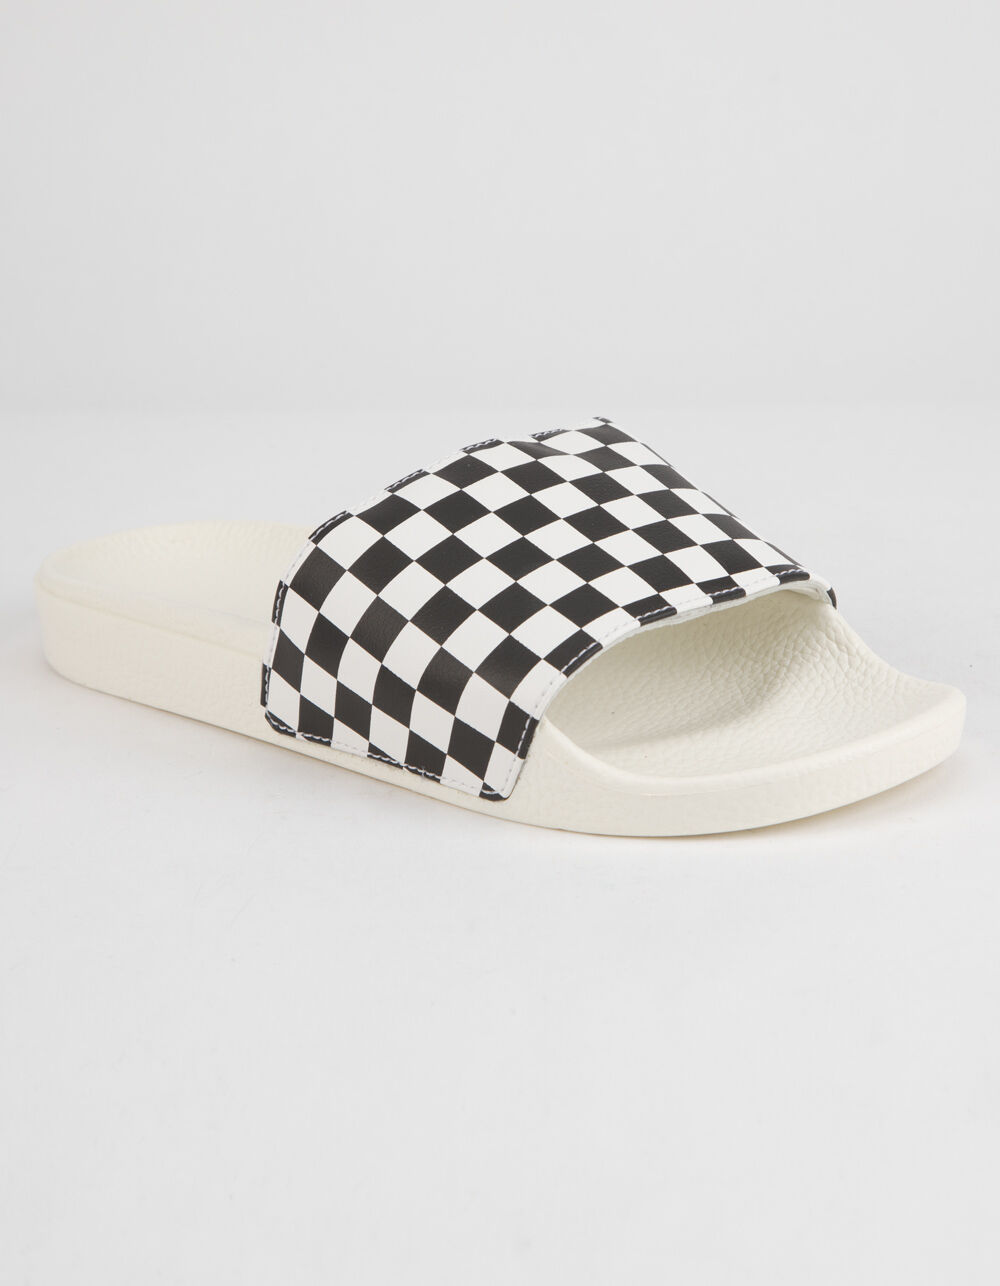 VANS Checkered Black & White Slide Sandals